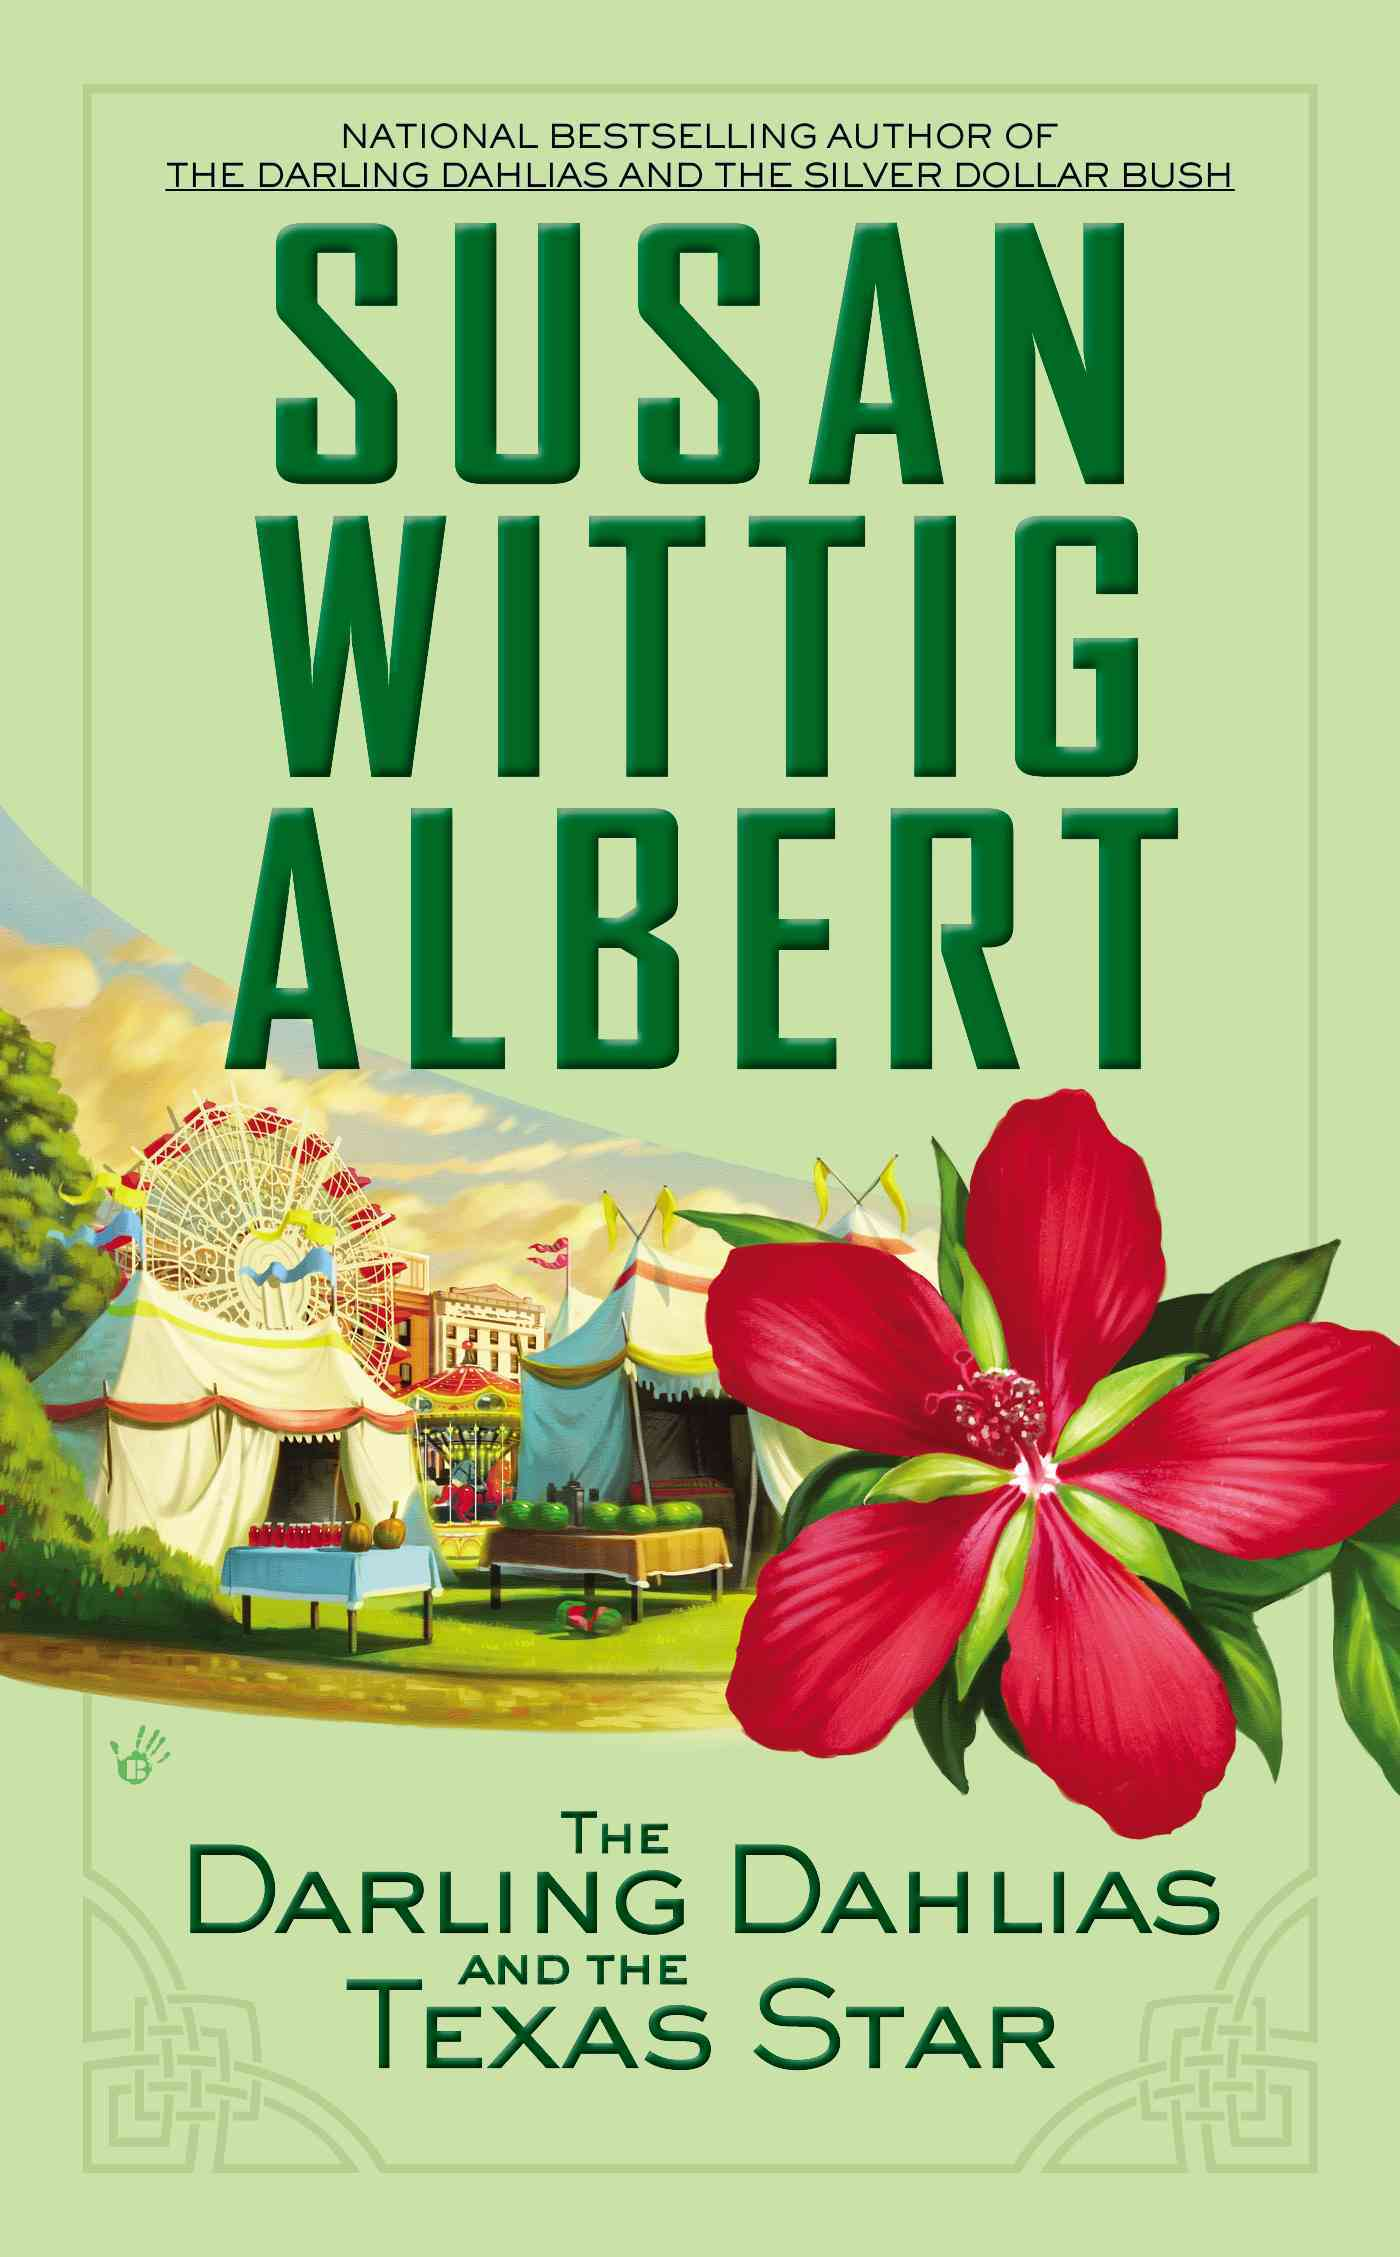 The Darling Dahlias and the Texas Star By Albert, Susan Wittig